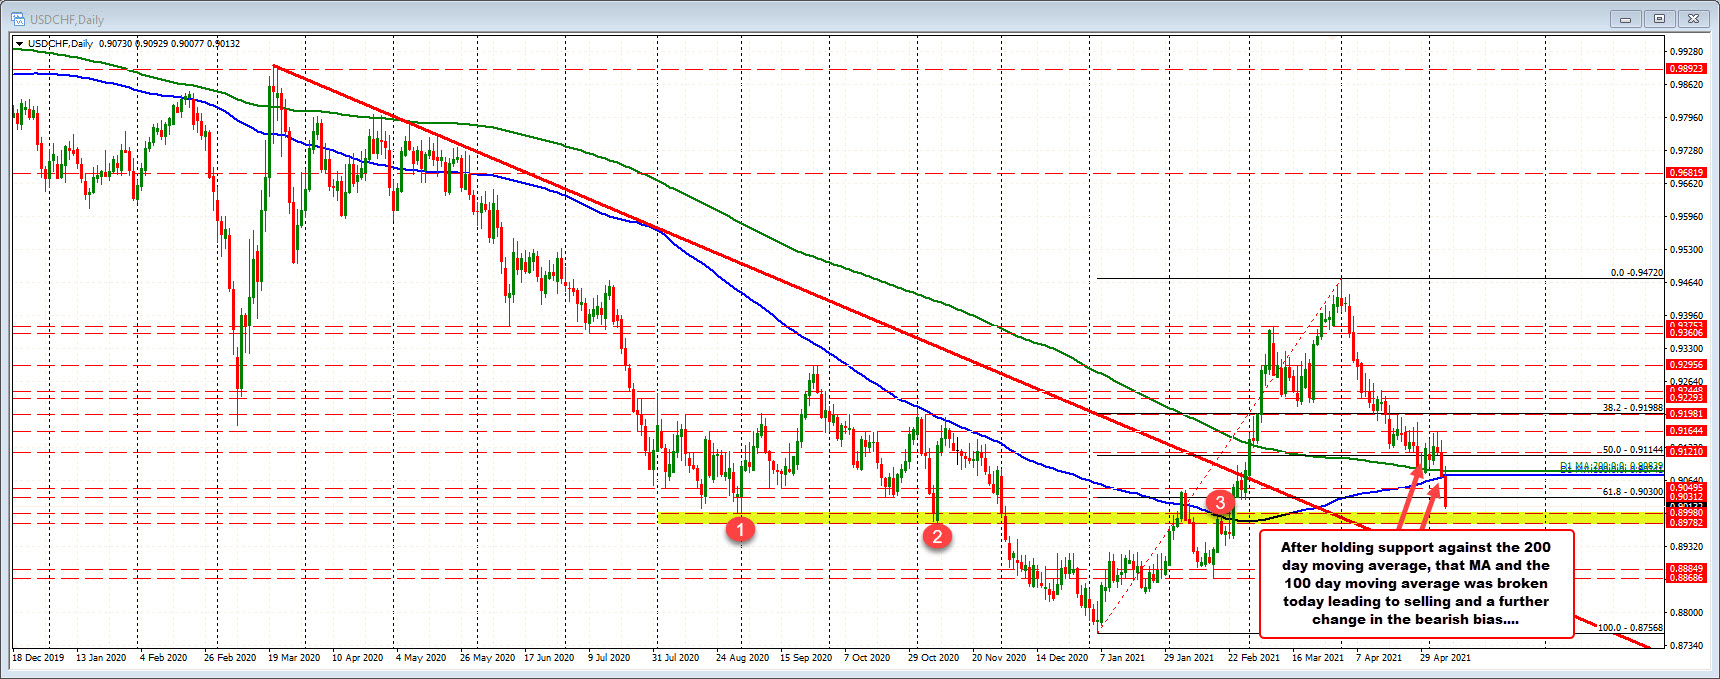 USDCHF trades to the lowest level since Feb 23